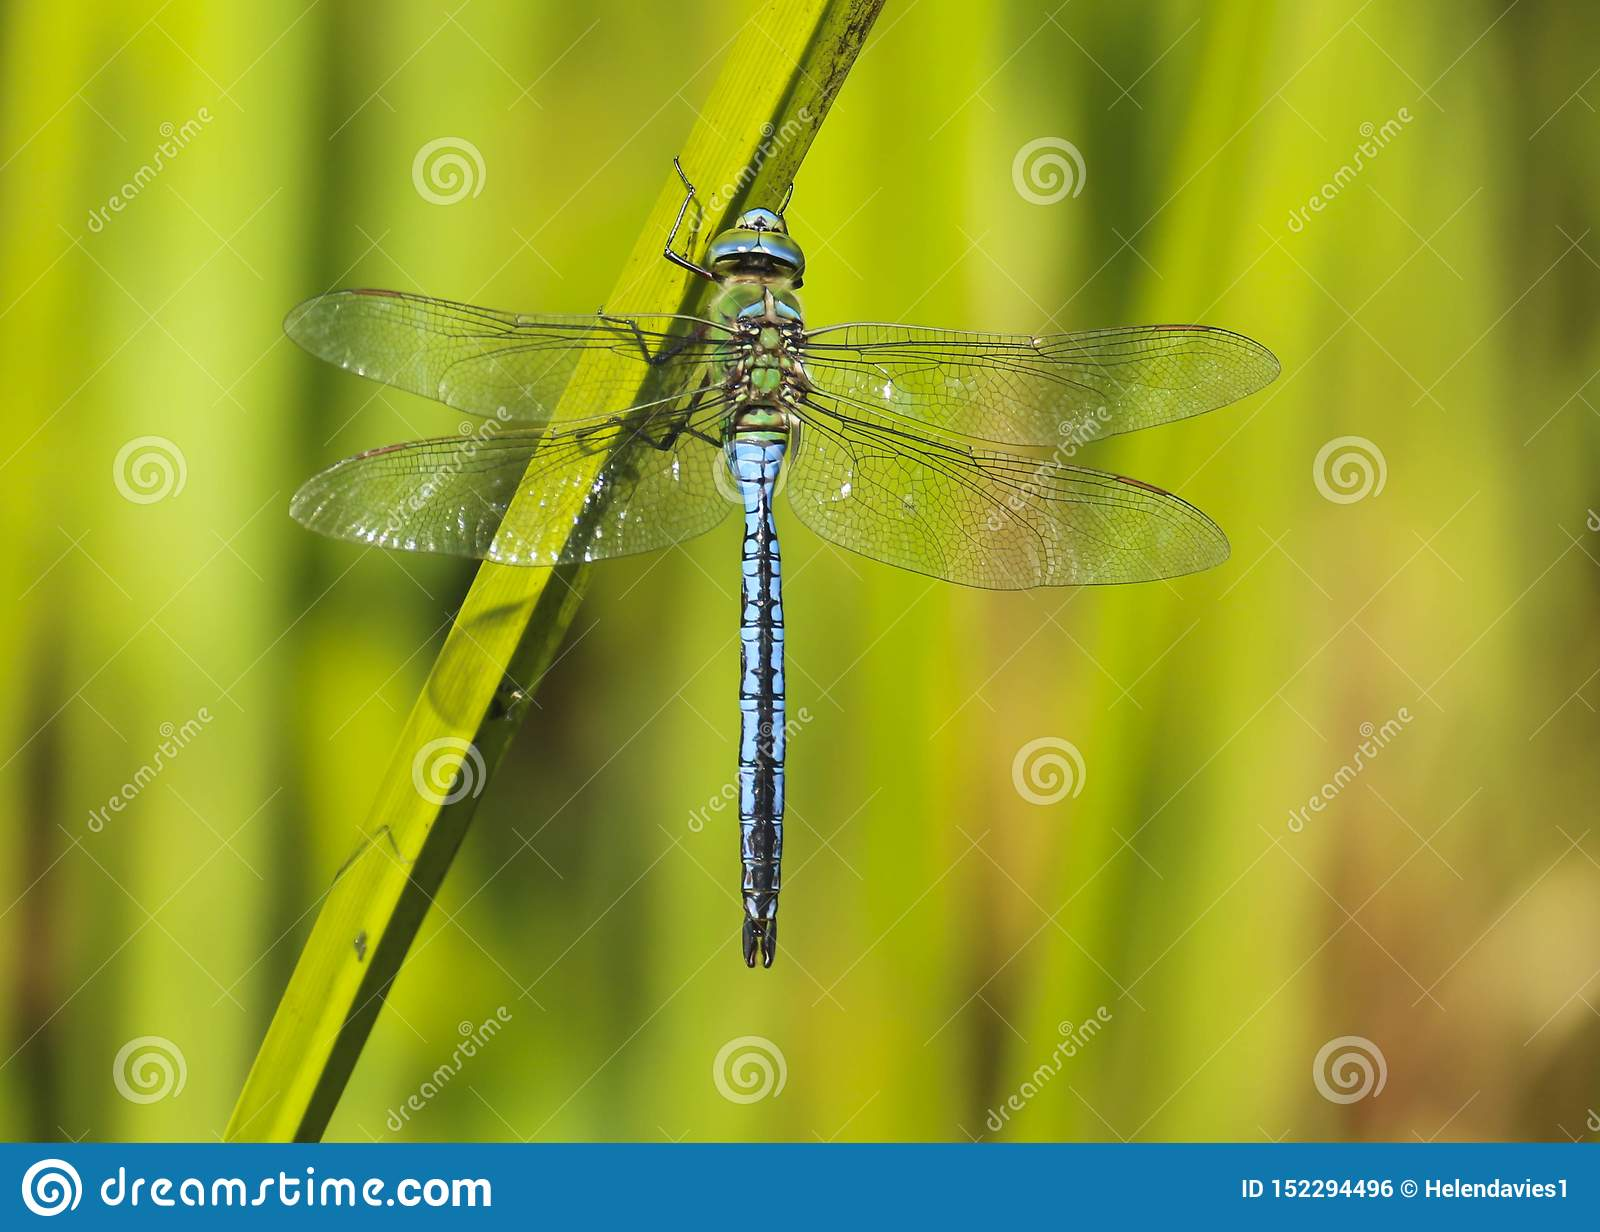 Male emperor dragonfly, Anax Imperator insect